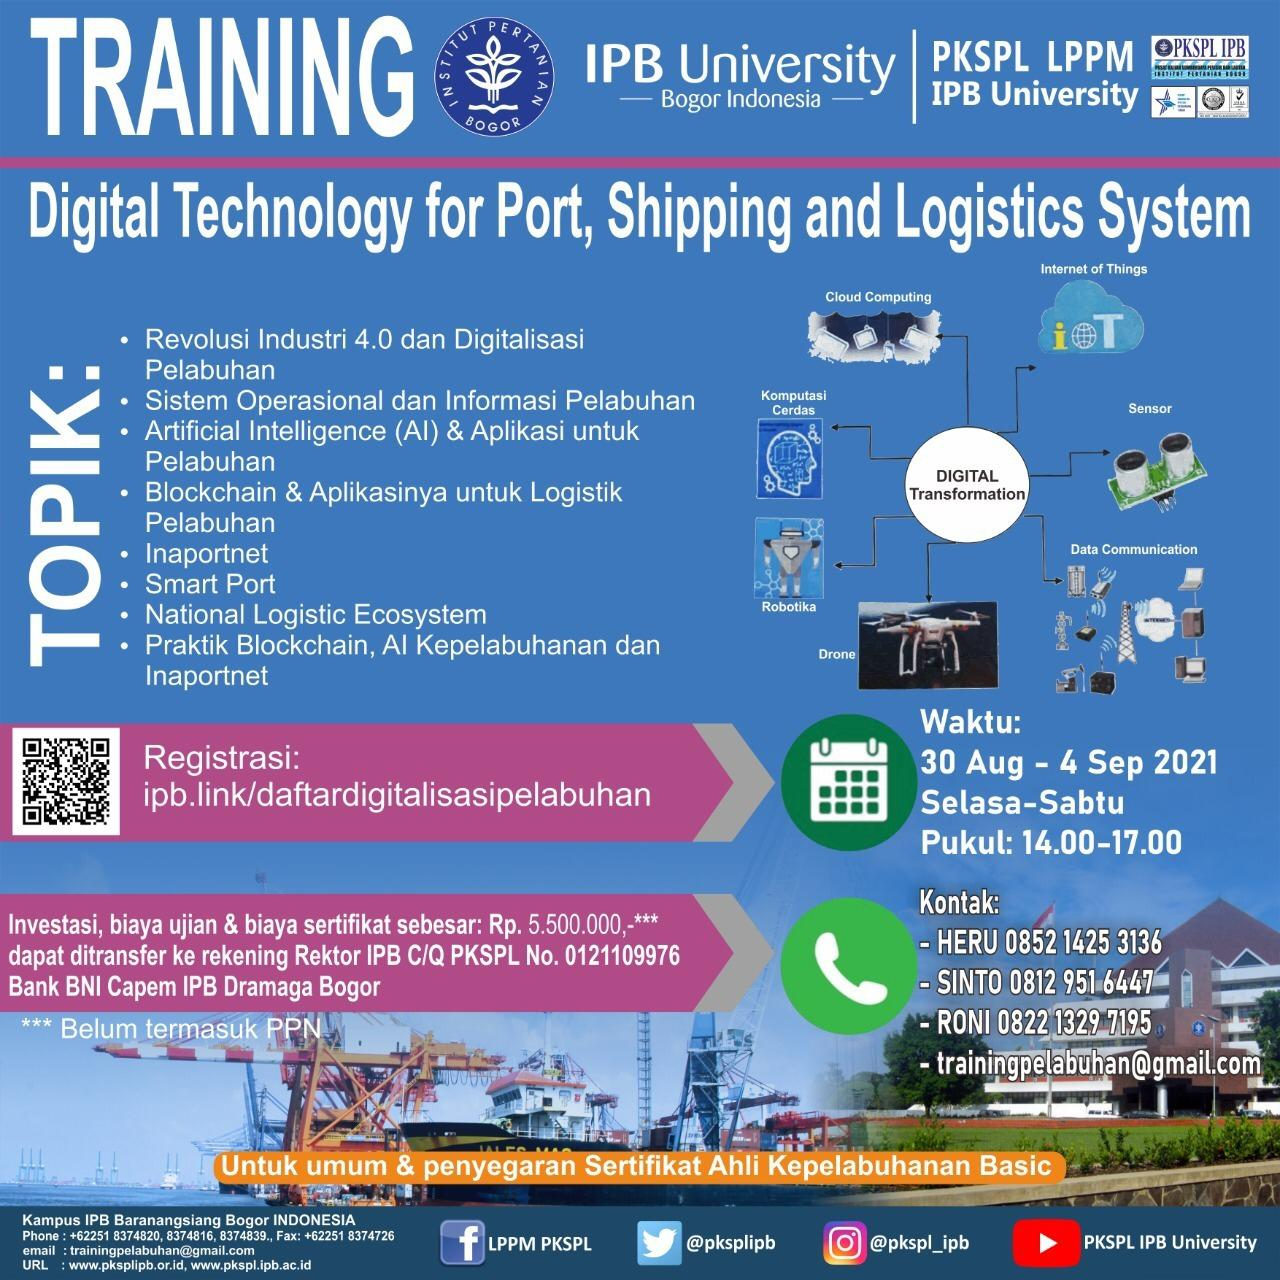 Training Digital Technology for Port, Shipping and Logistics System